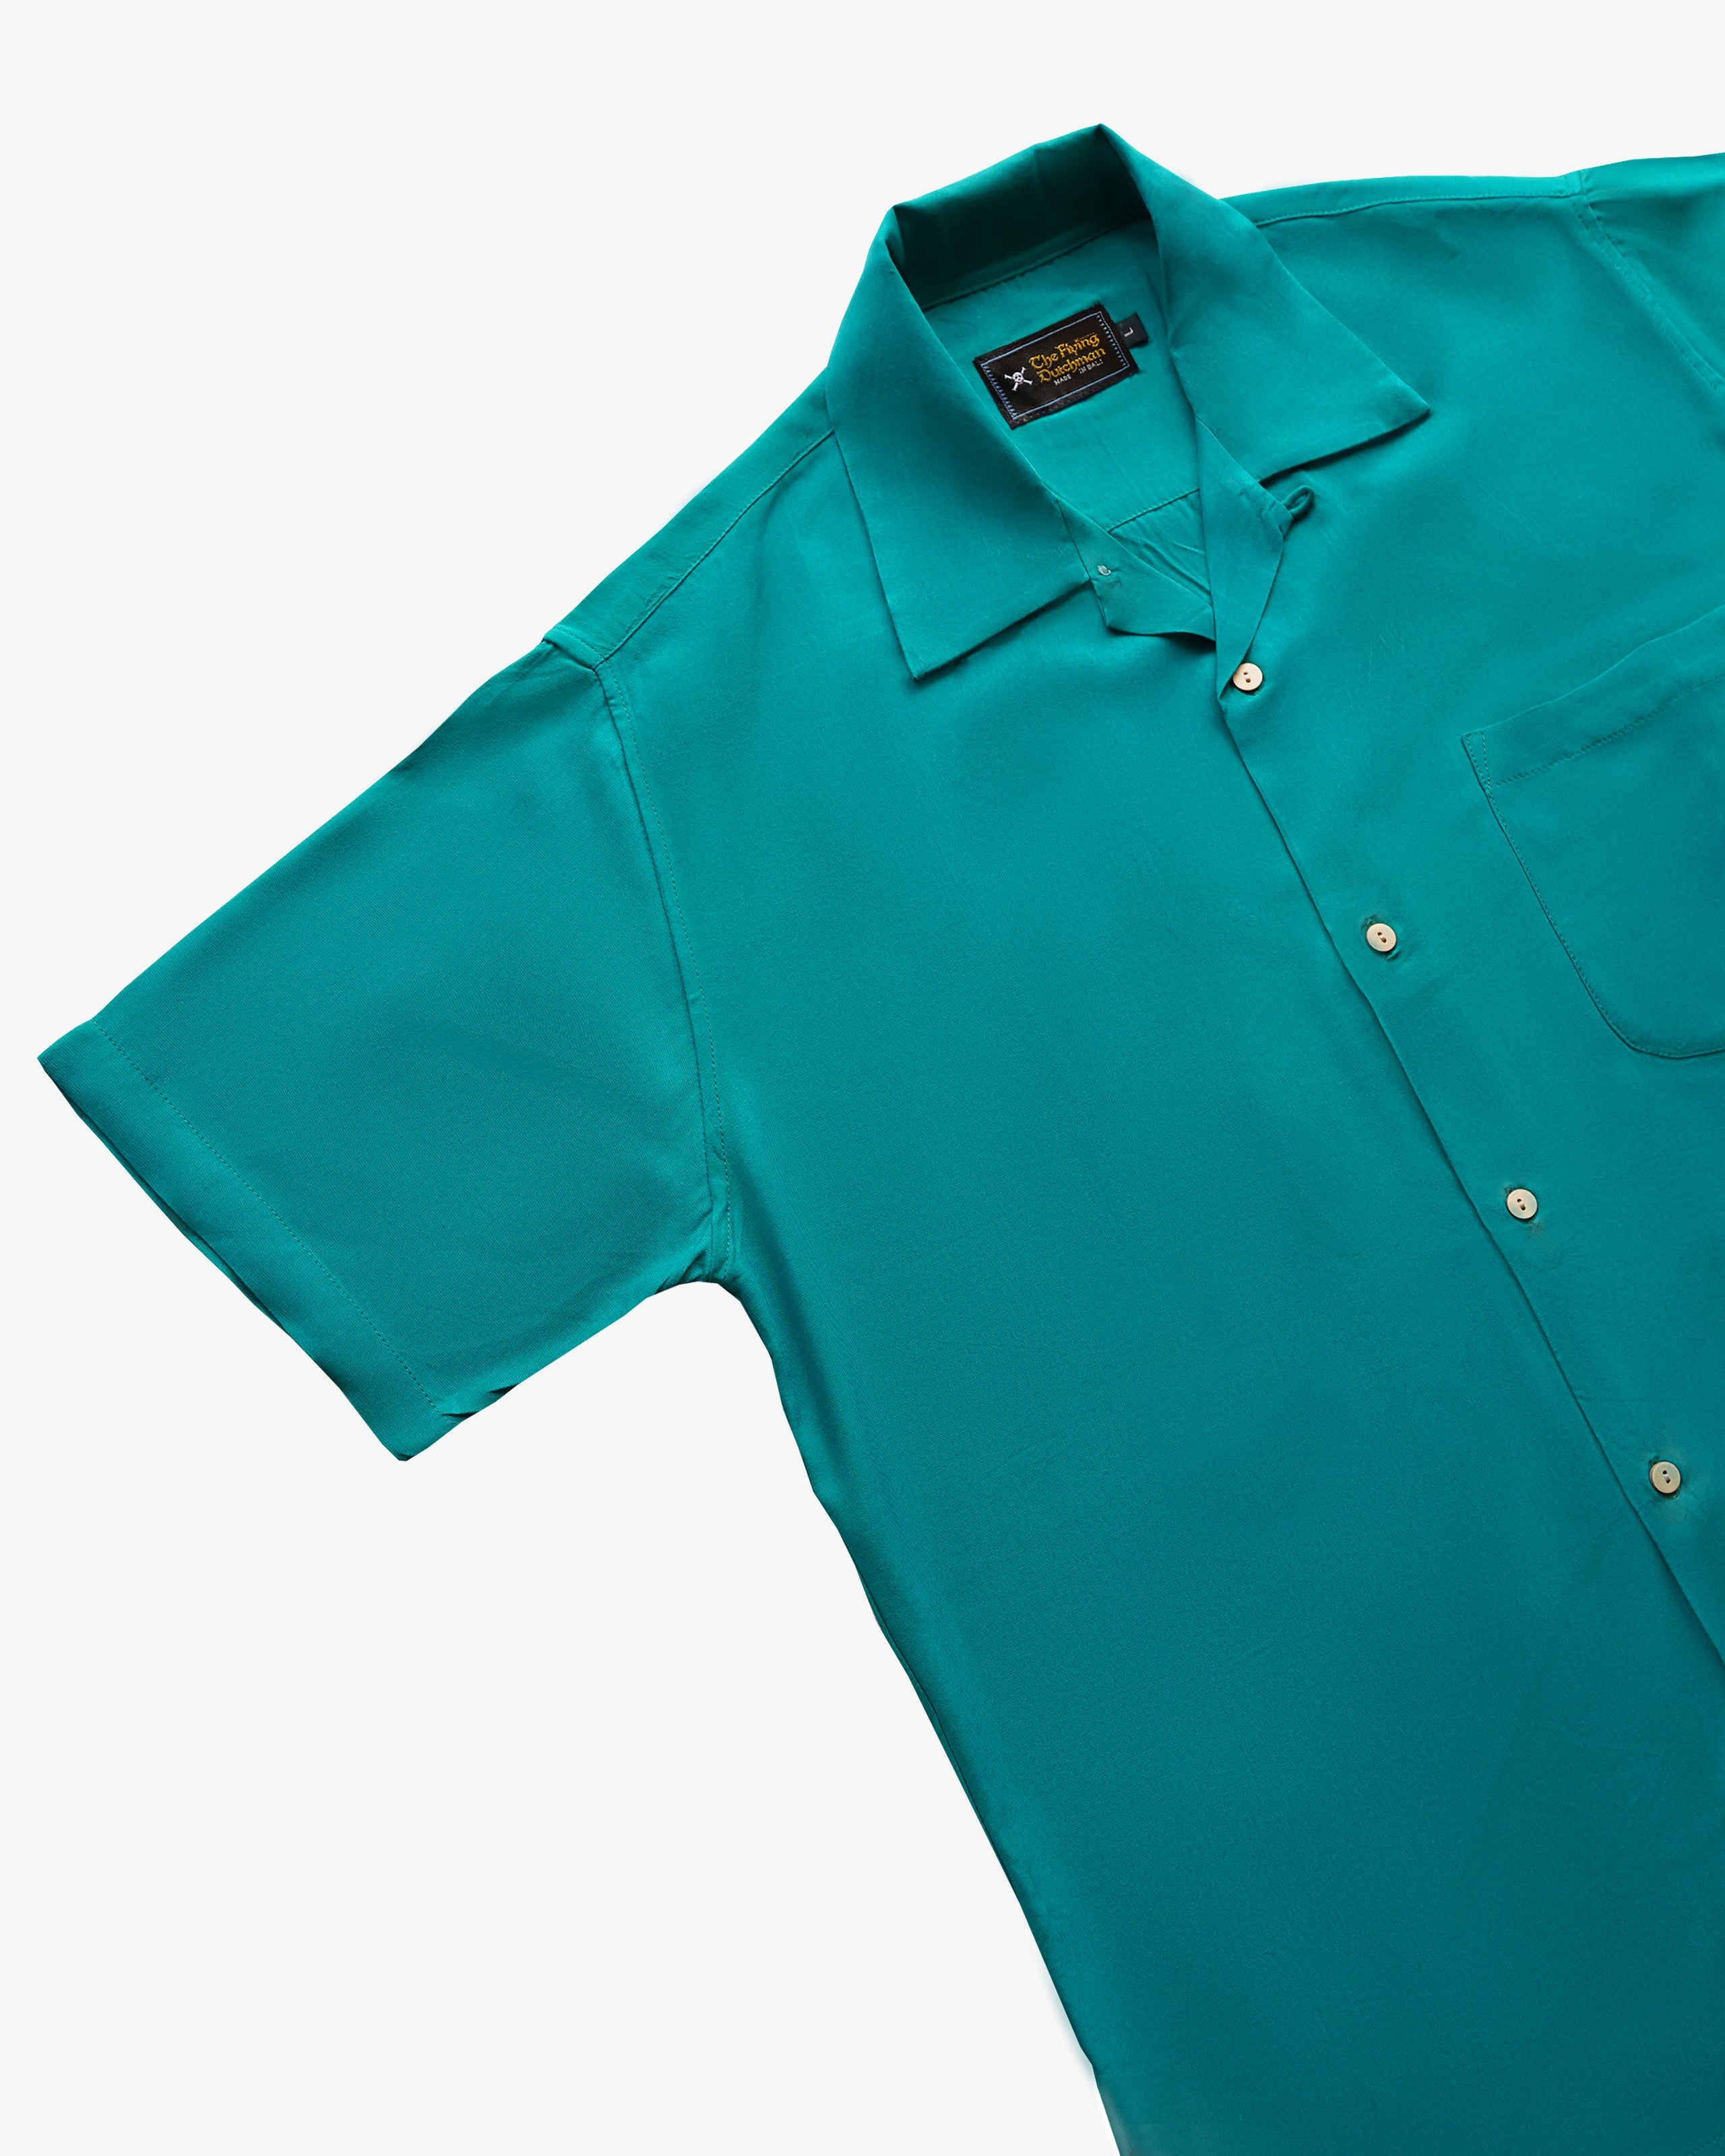 Plain Emerald short sleeve shirt